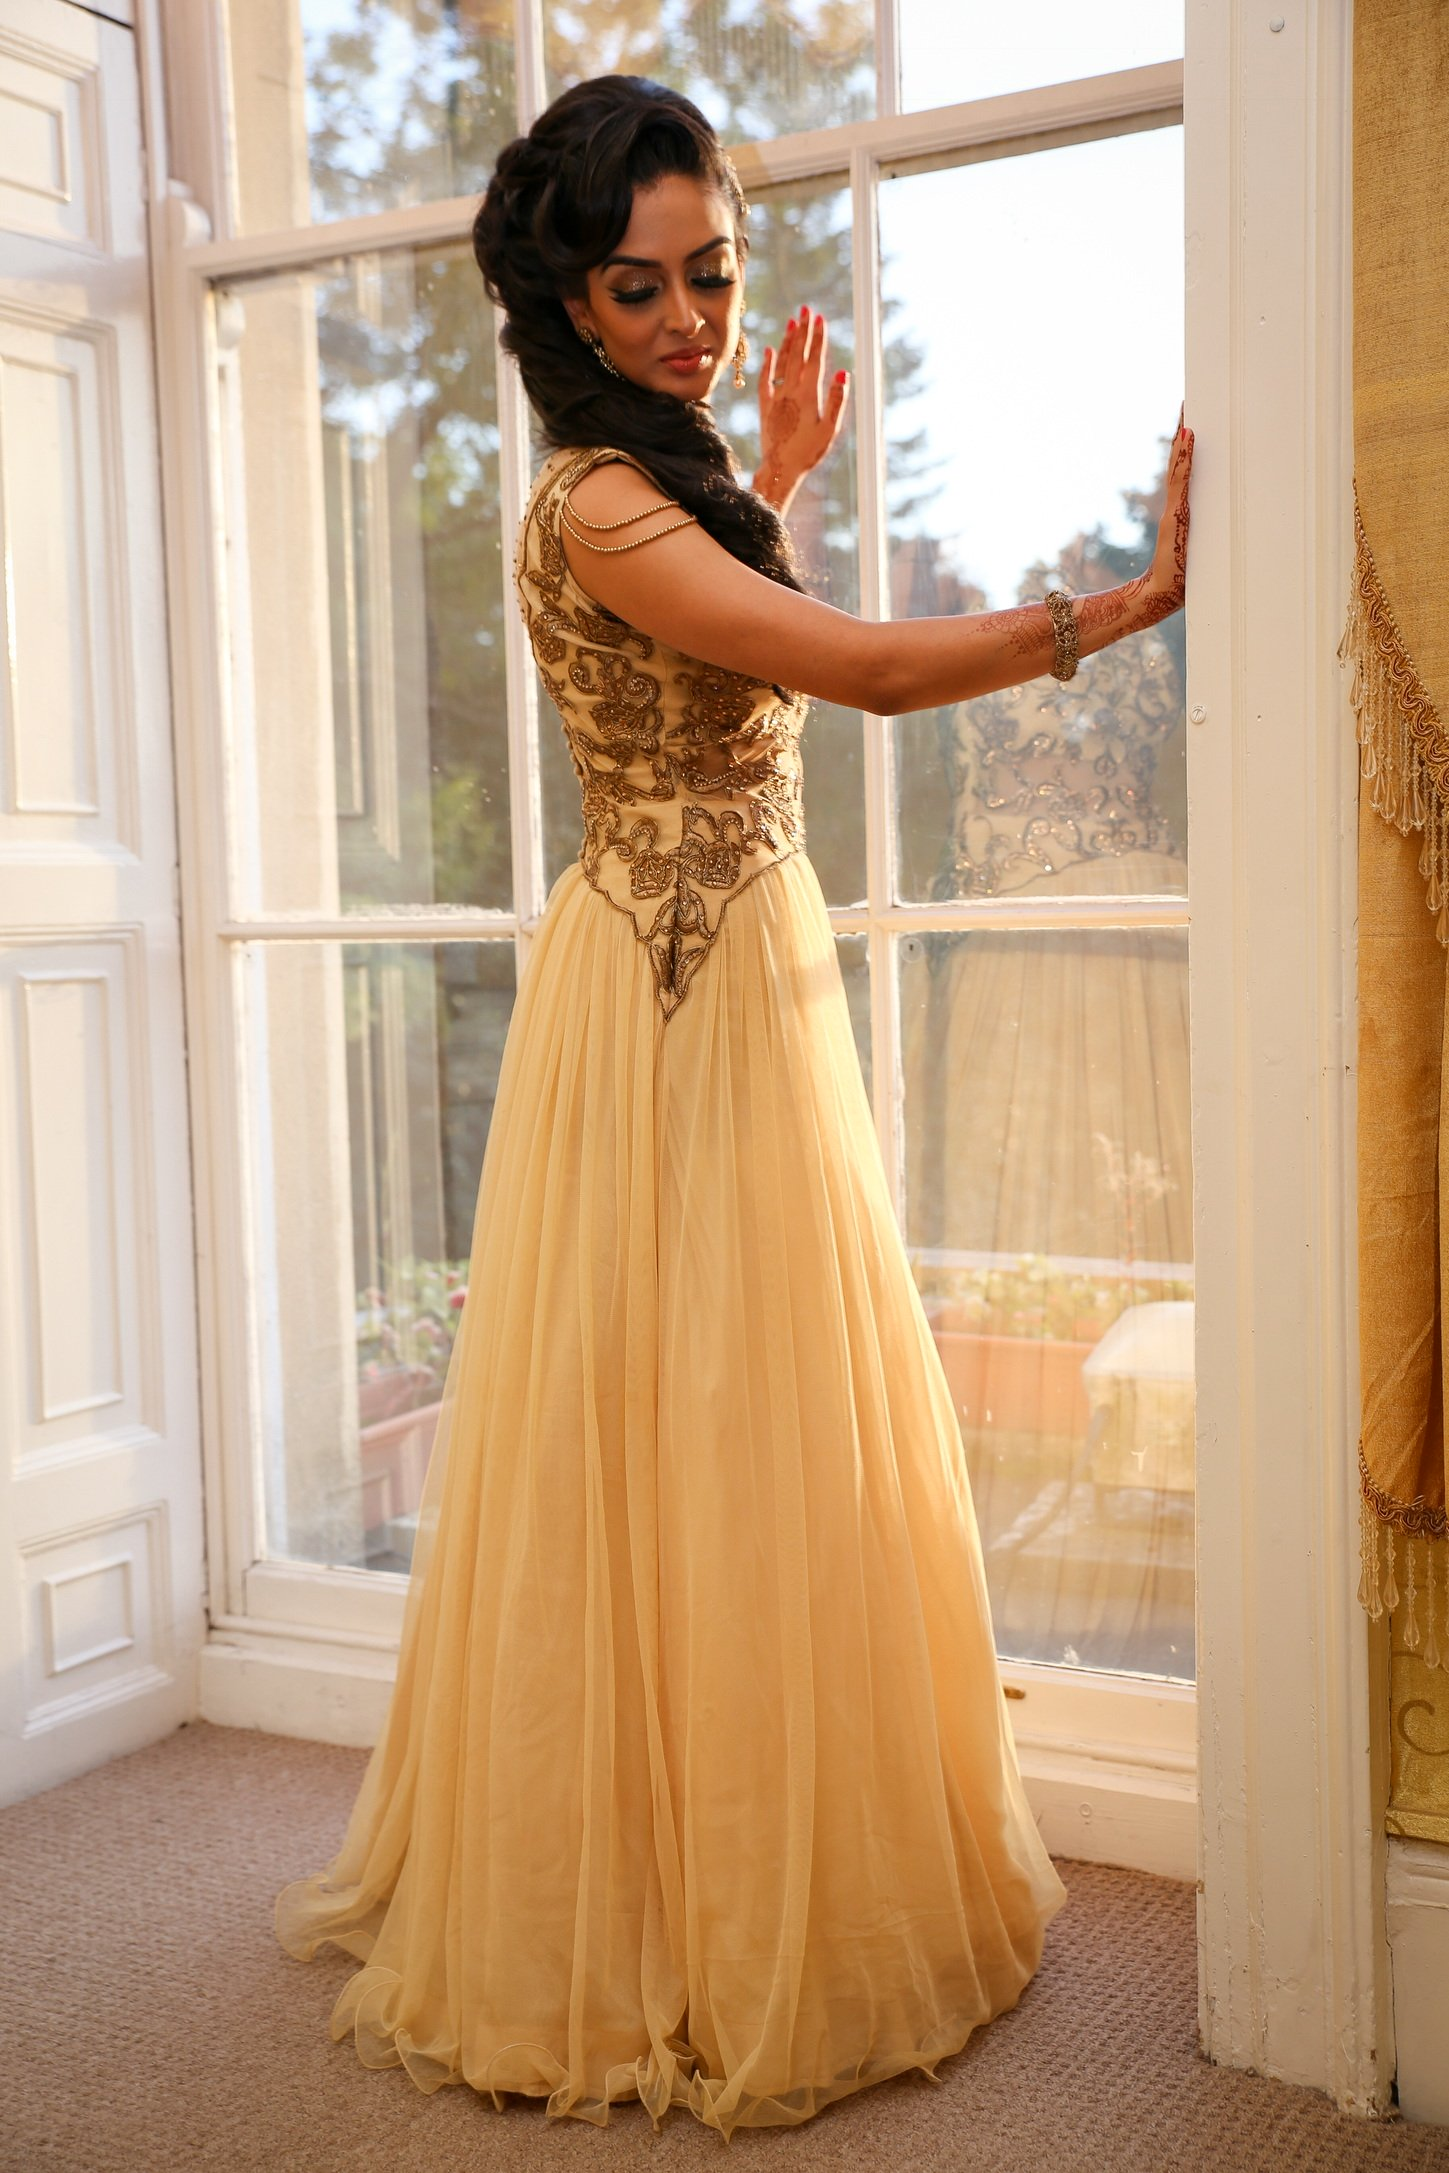 Bridal Outfit ideas for your reception 6